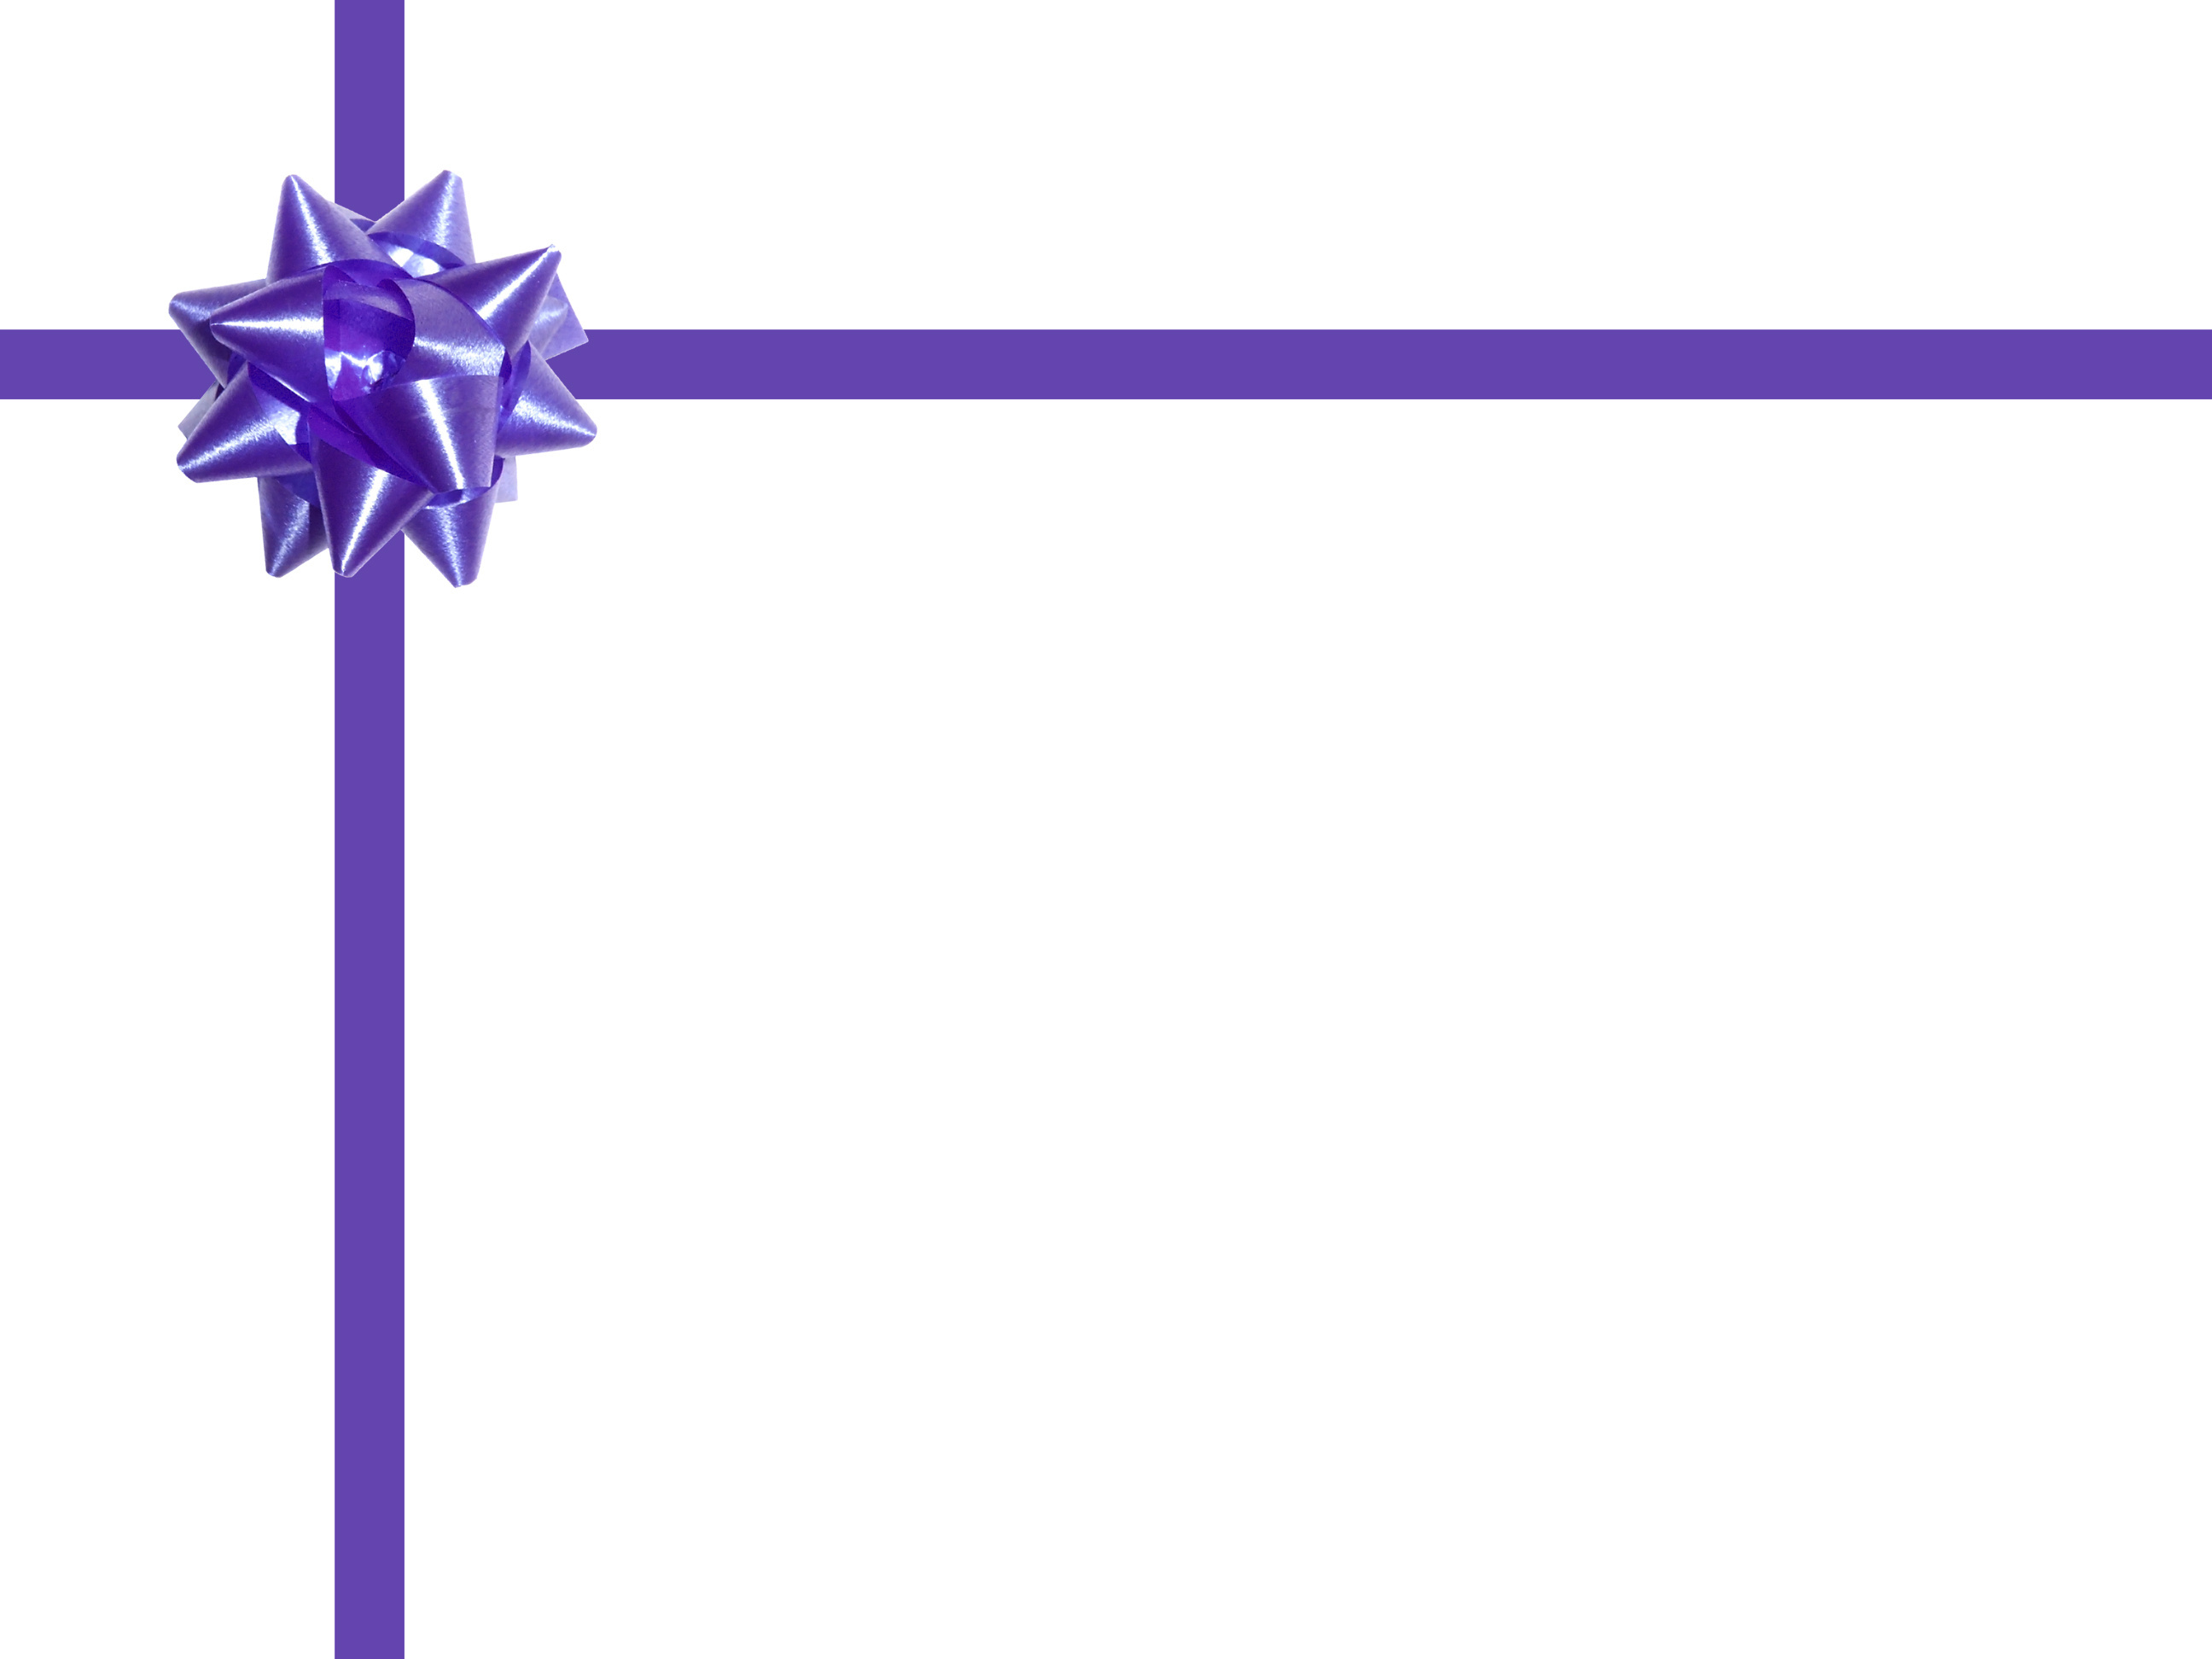 Purple-present-clip-art-Photoxpress-1607902-1.jpg